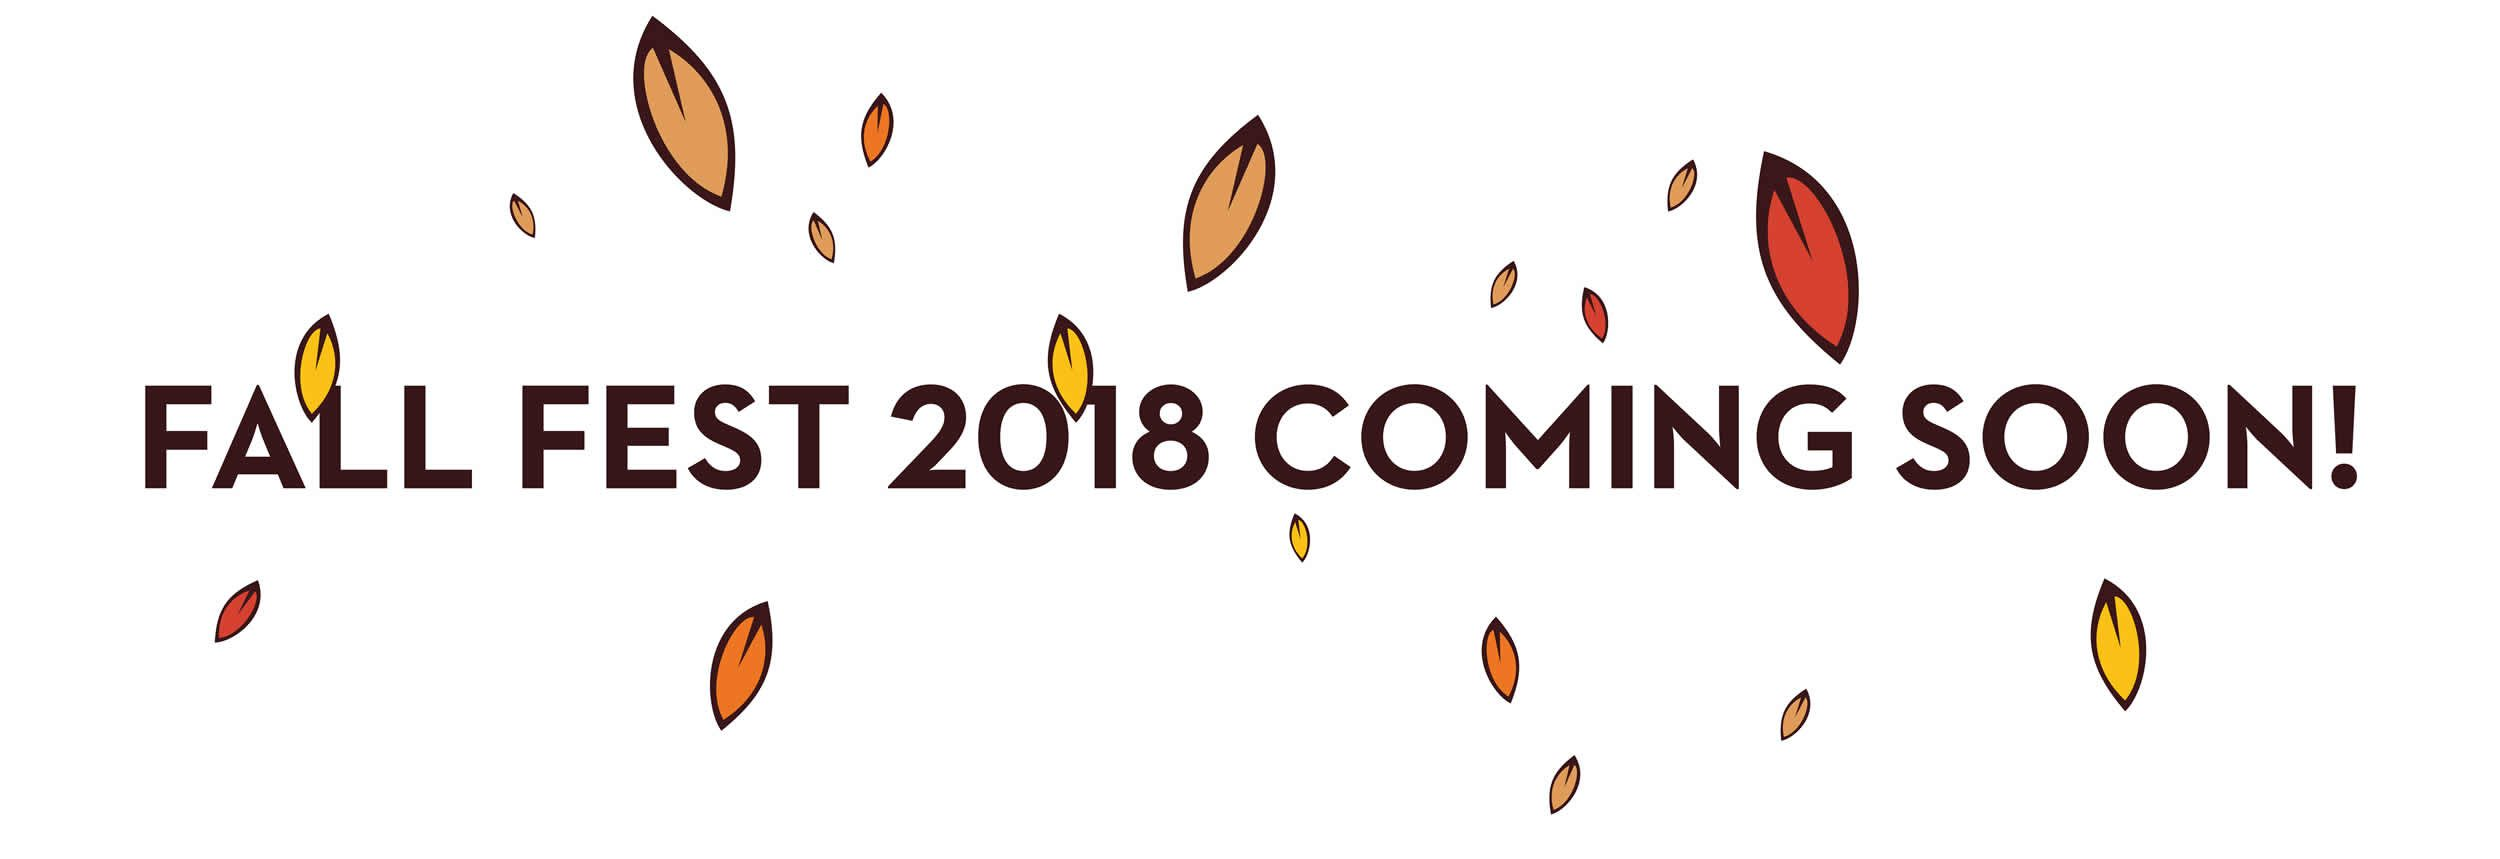 Fall Fest 2018 Coming Soon